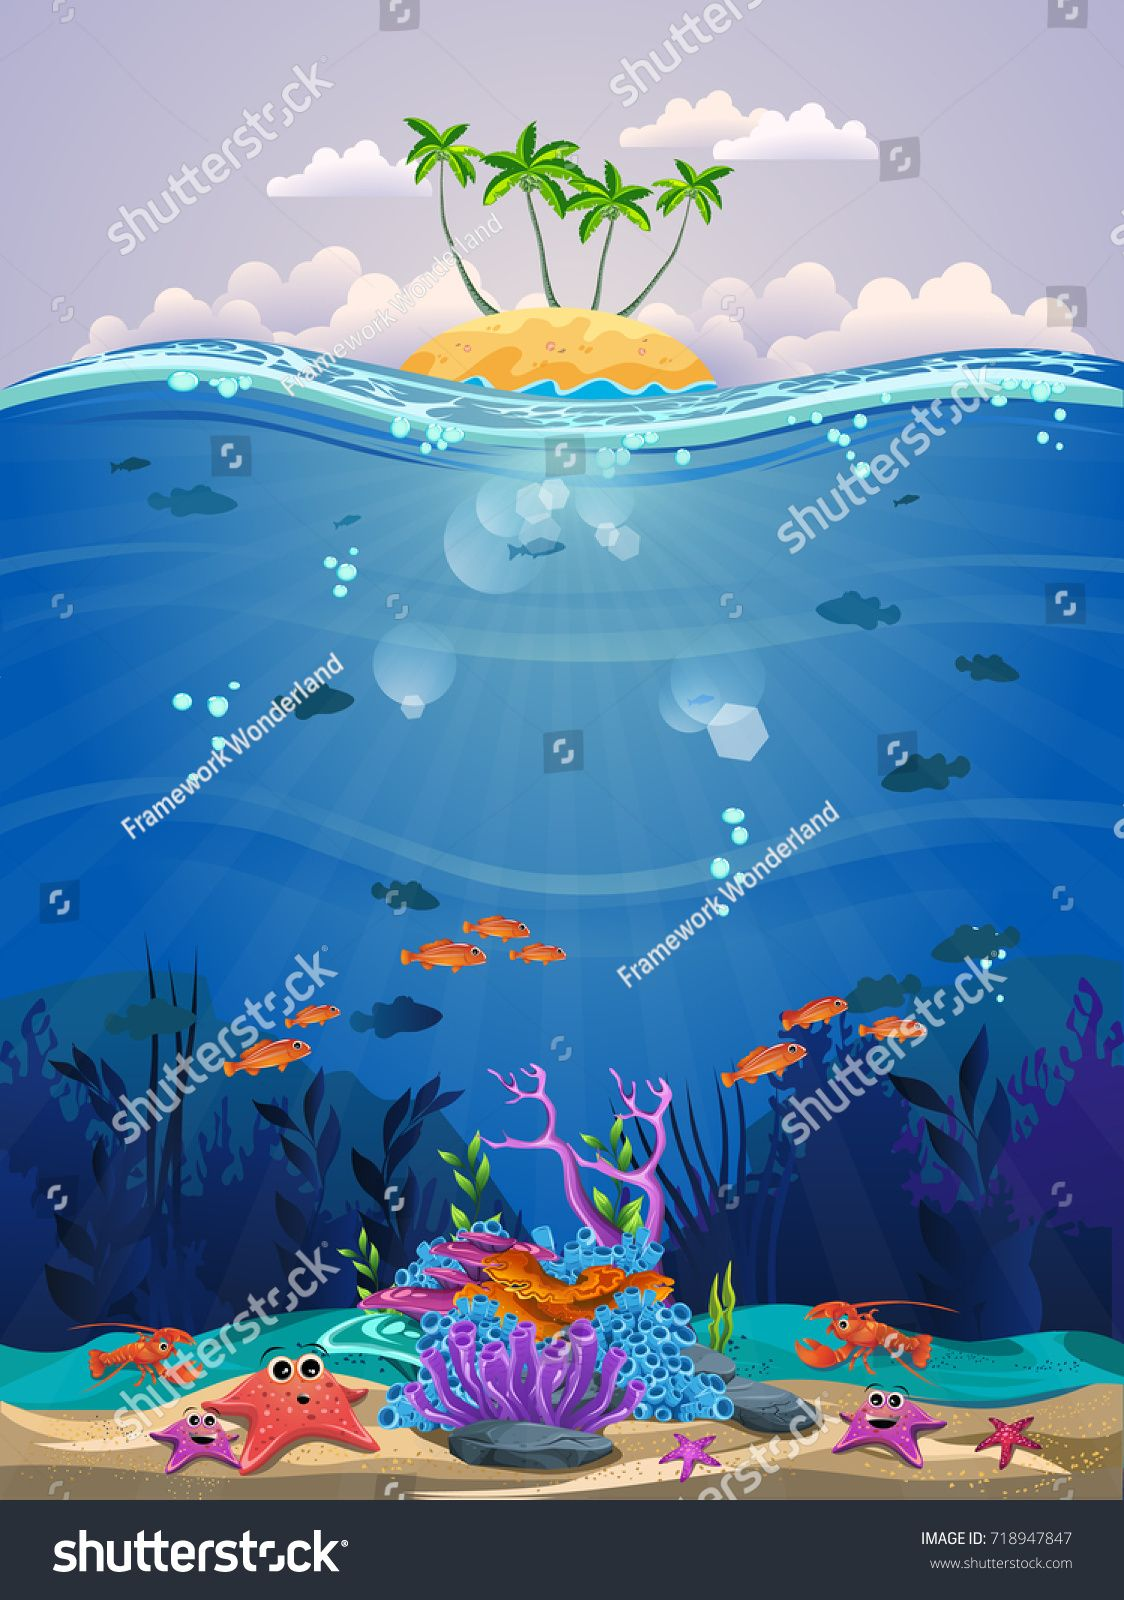 Beautiful Marine Life With Coral Reef And Sea Fish There Is A Beautiful Little Island Ocean underwater life fish corals algae